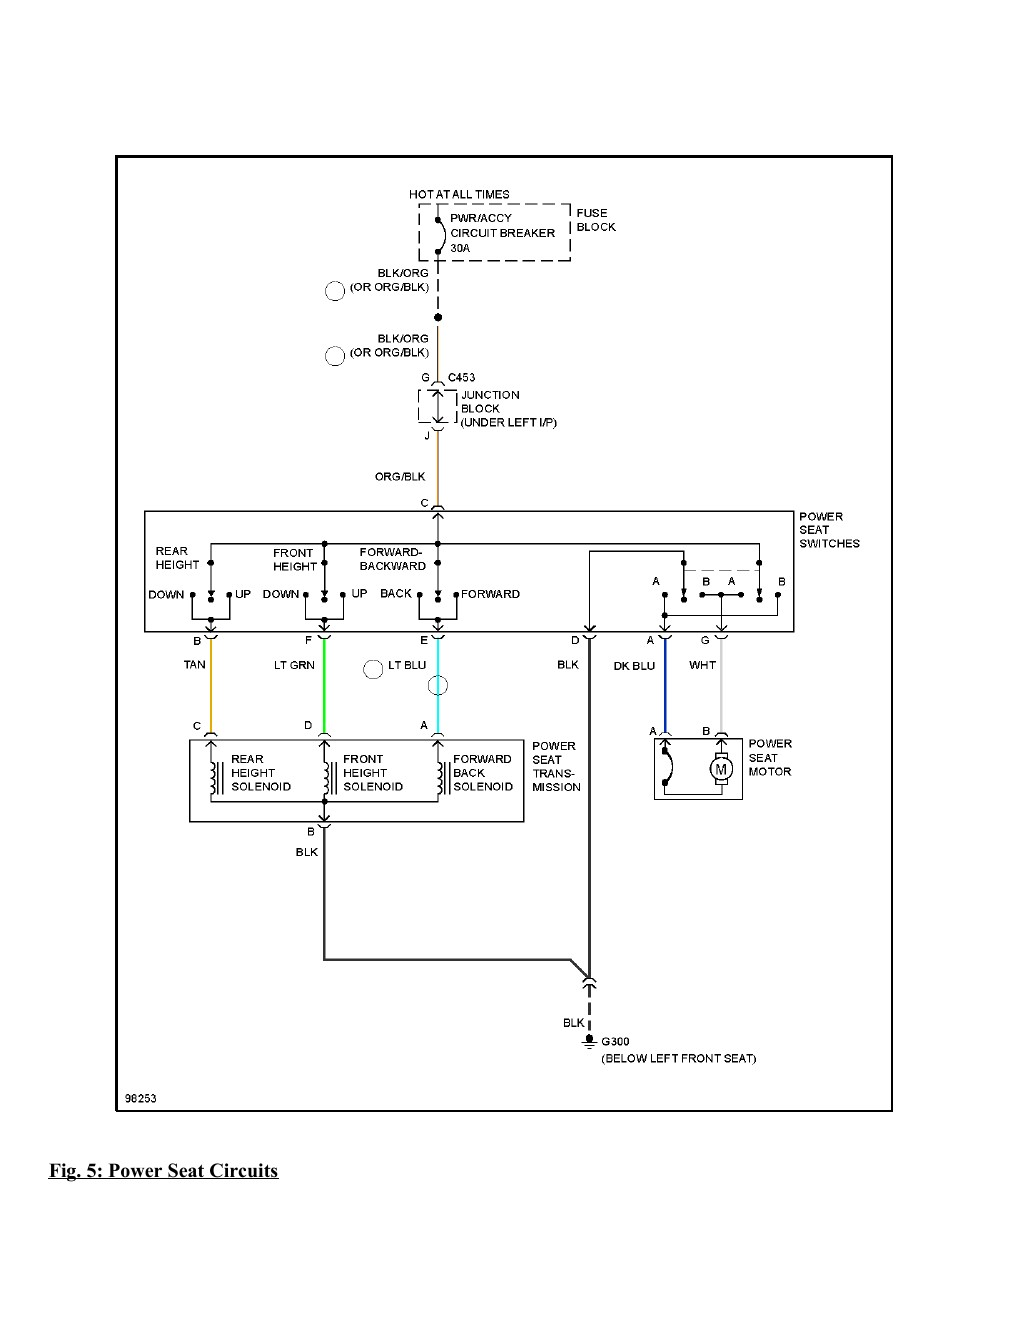 85 Monte Carlo Ss Wiring Diagram Full Hd Version Wiring Diagram Ricodiagrambas Kuteportal Fr